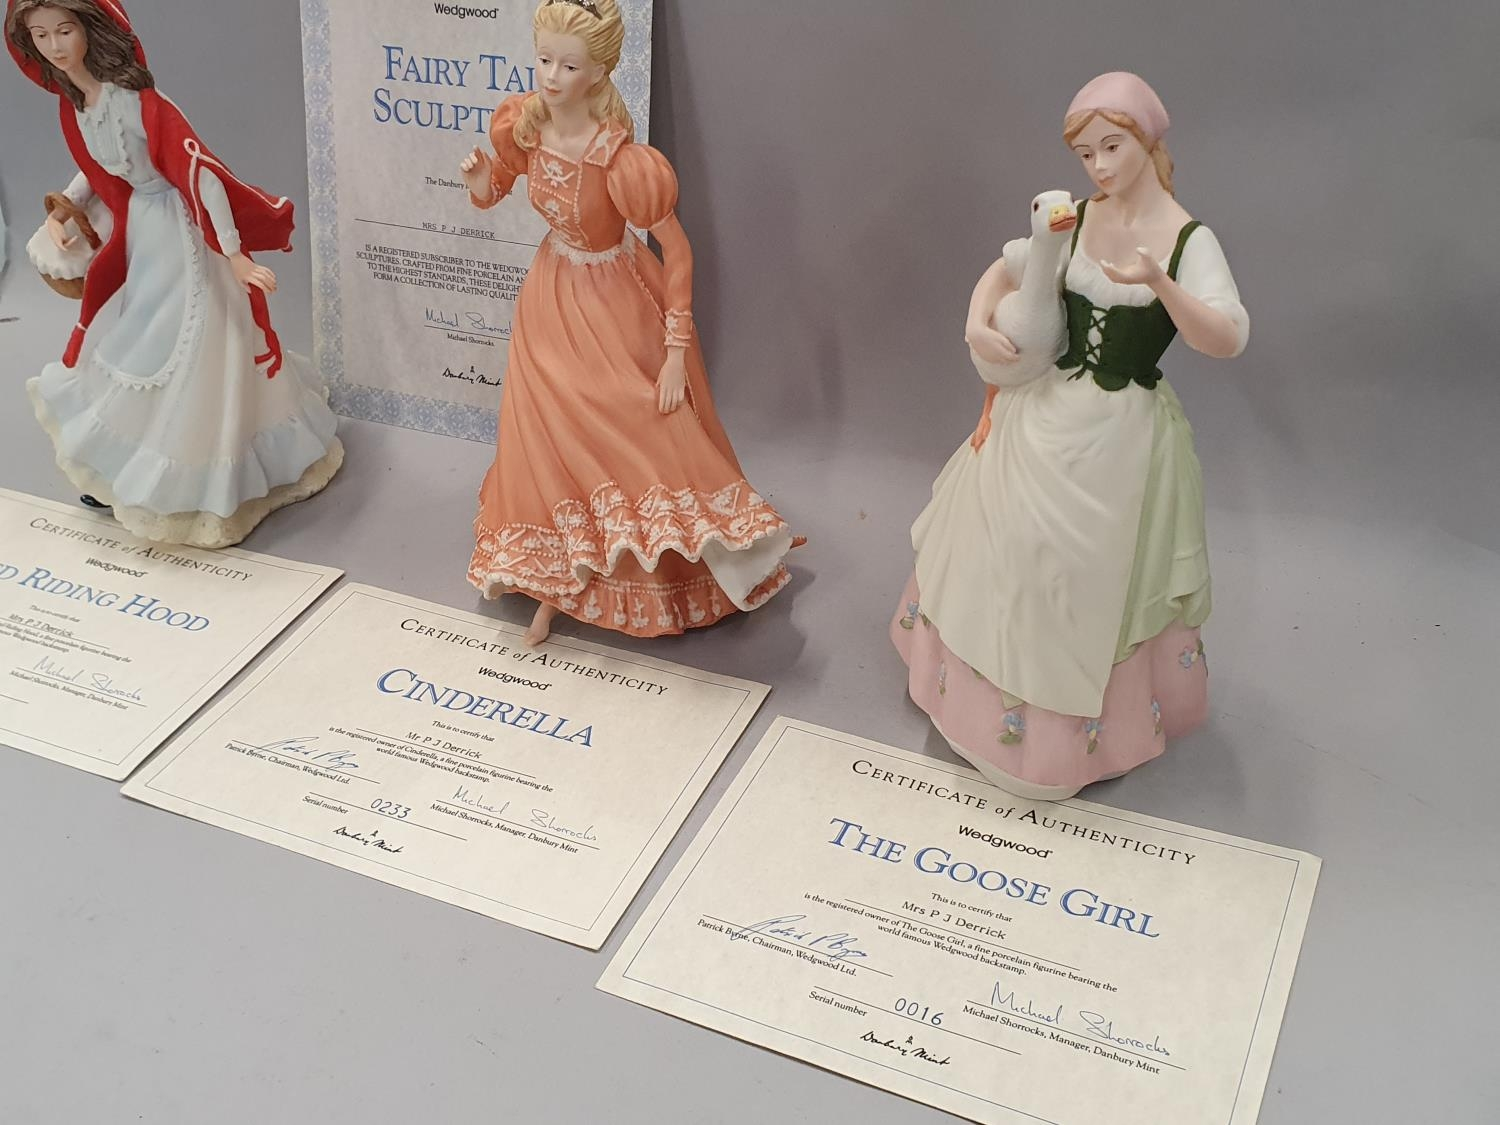 Wedgwood fairy tale figurines x 3 with certificates. - Image 3 of 4